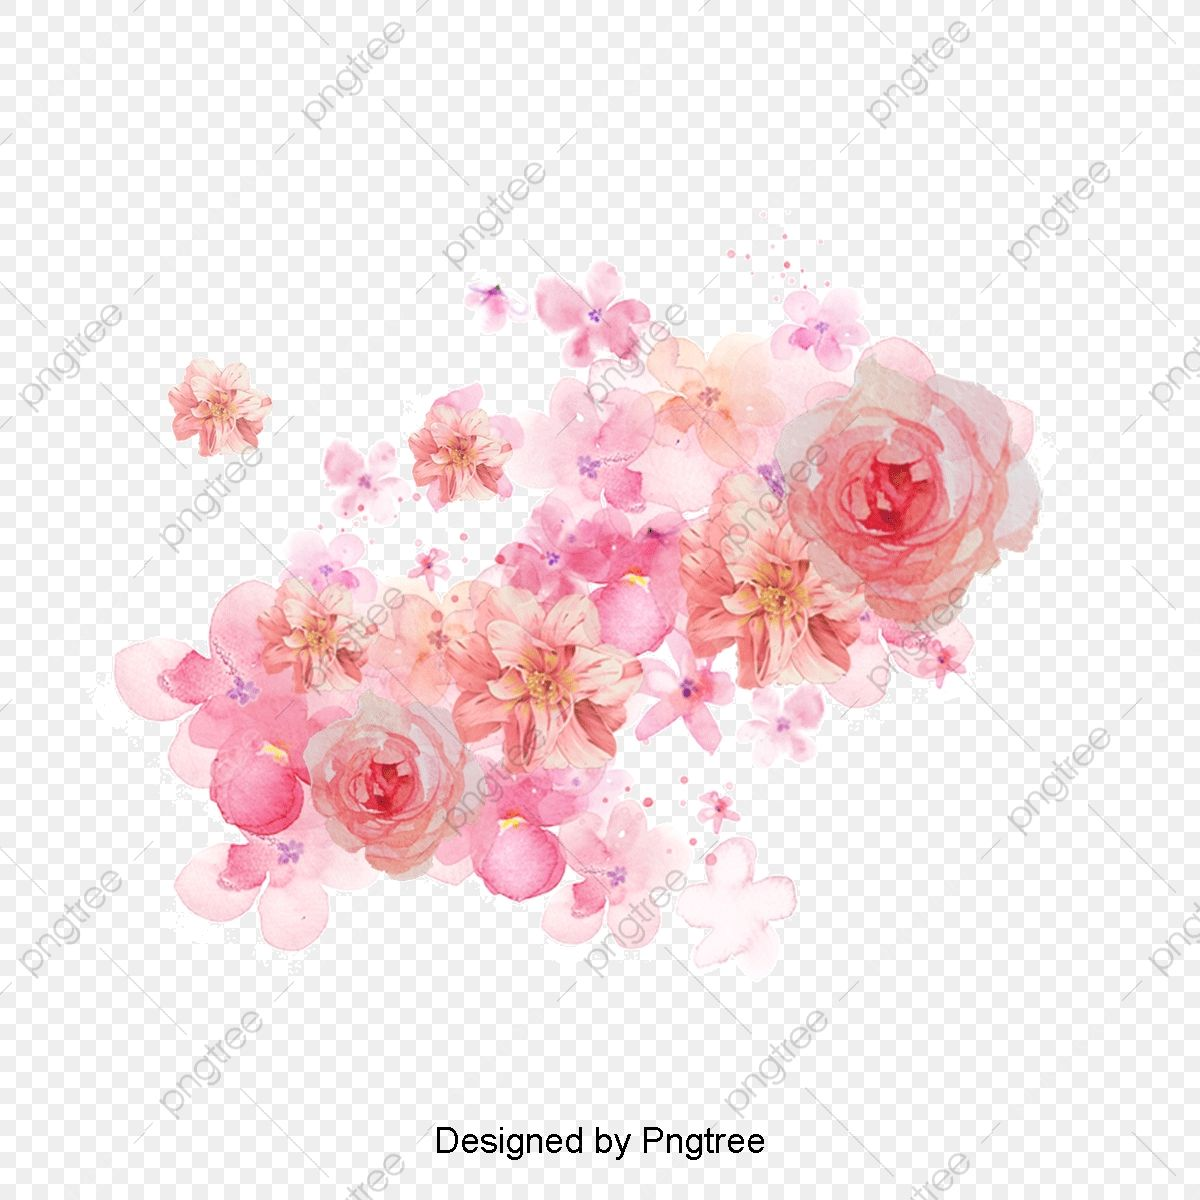 Peony Flower Watercolor Painted Floral Elements In 2020 Peony